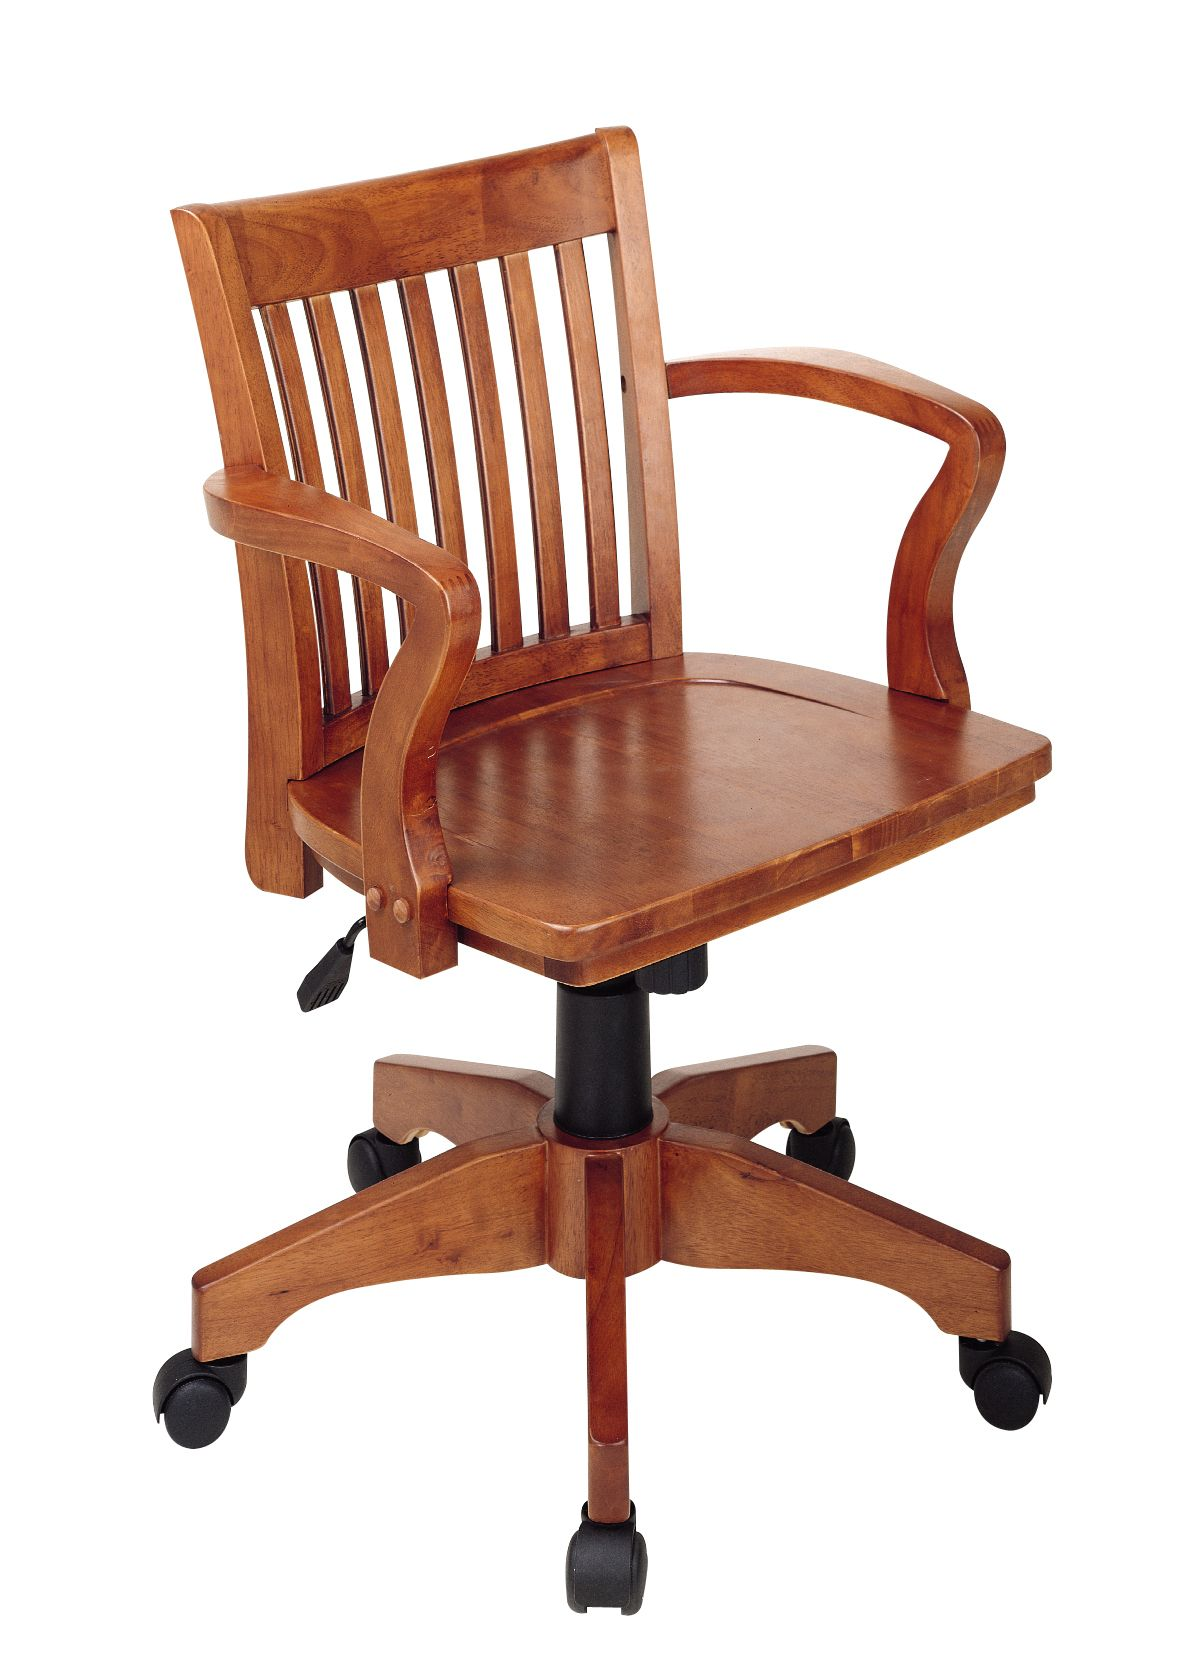 office star fruitwood bankers chair with wood seat desk keru accent table chairs sitbetter pier one curtains clearance cherry ethan allen dining art deco lighting teal wall clock